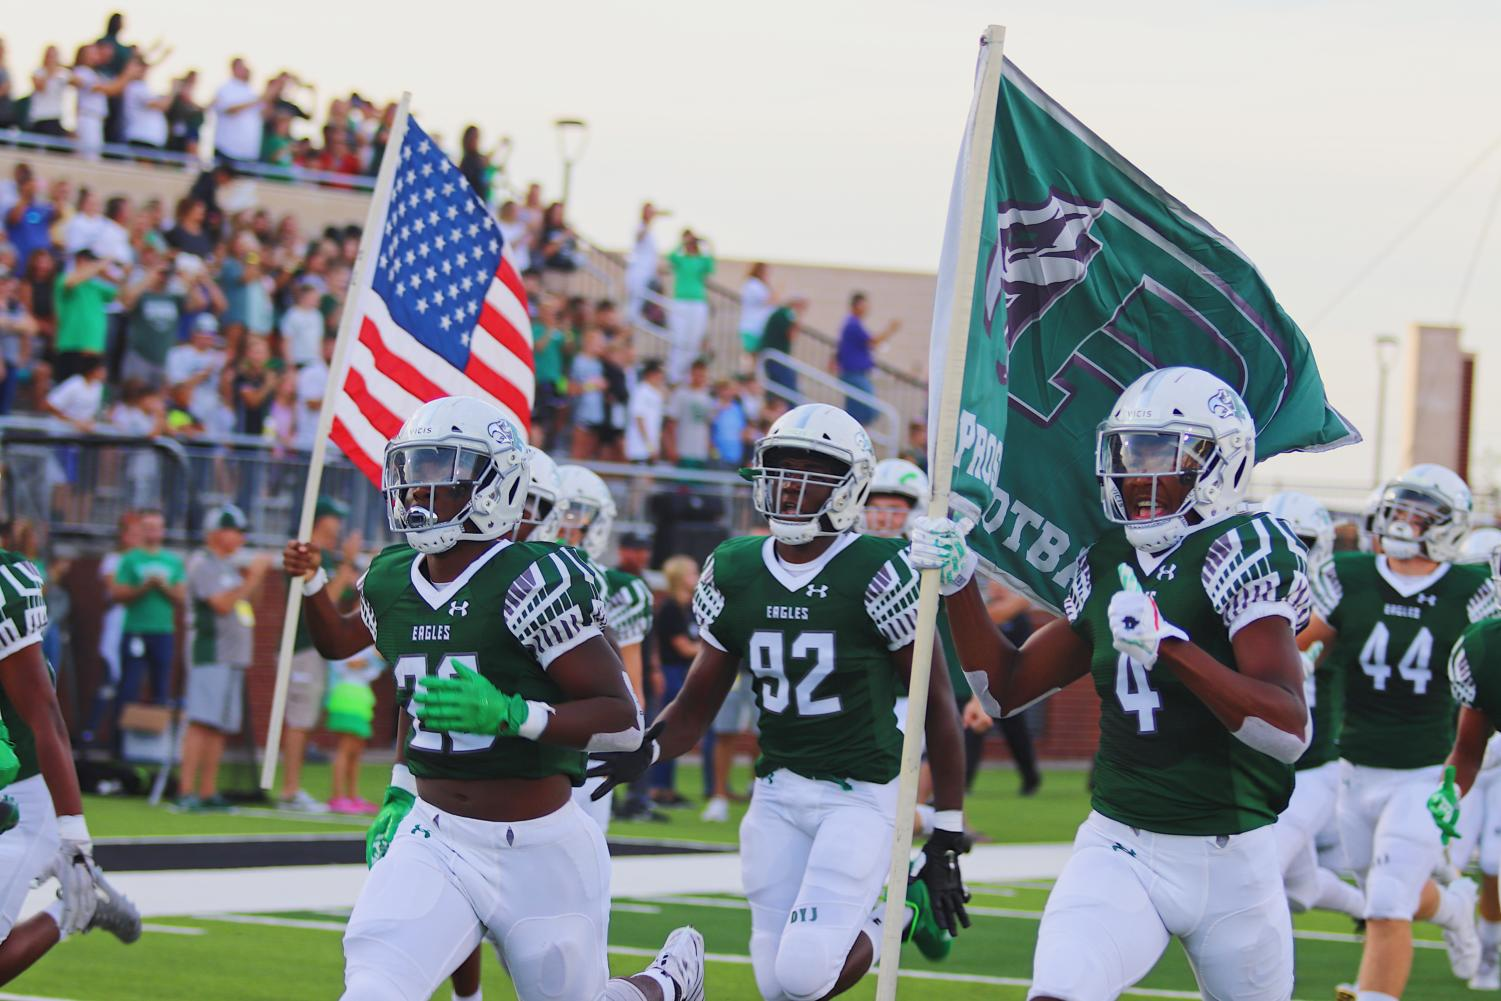 Sophomore Tyler Bailey, No. 4, runs out of the tunnel holding a Prosper flag with seniors J.T. Lane, No. 28, and Malachi Edwards, No. 92 alongside him. The Eagles beat Rowlett 31-7 in their first game of the season. They will play Keller Timber Creek Friday, Sept. 6 at the Children's Health Stadium.